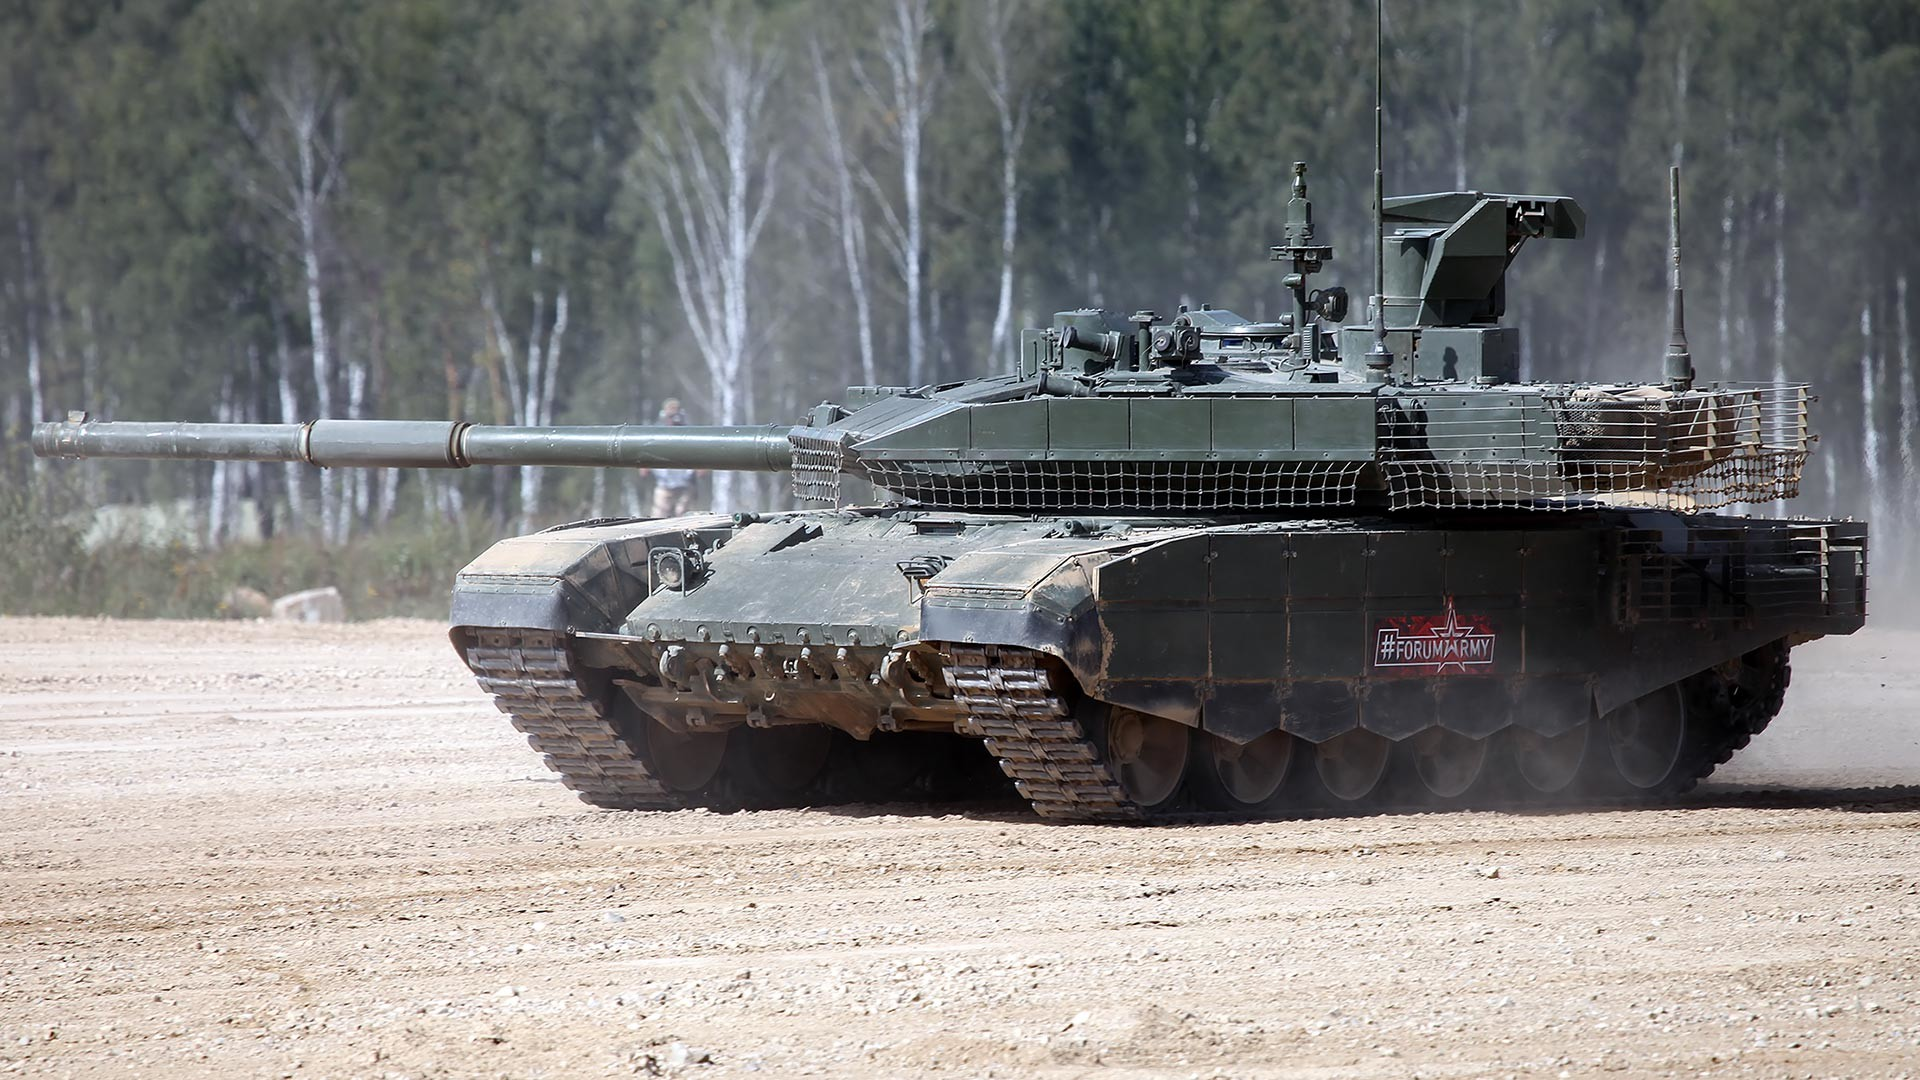 Tanque T-90M Proryv